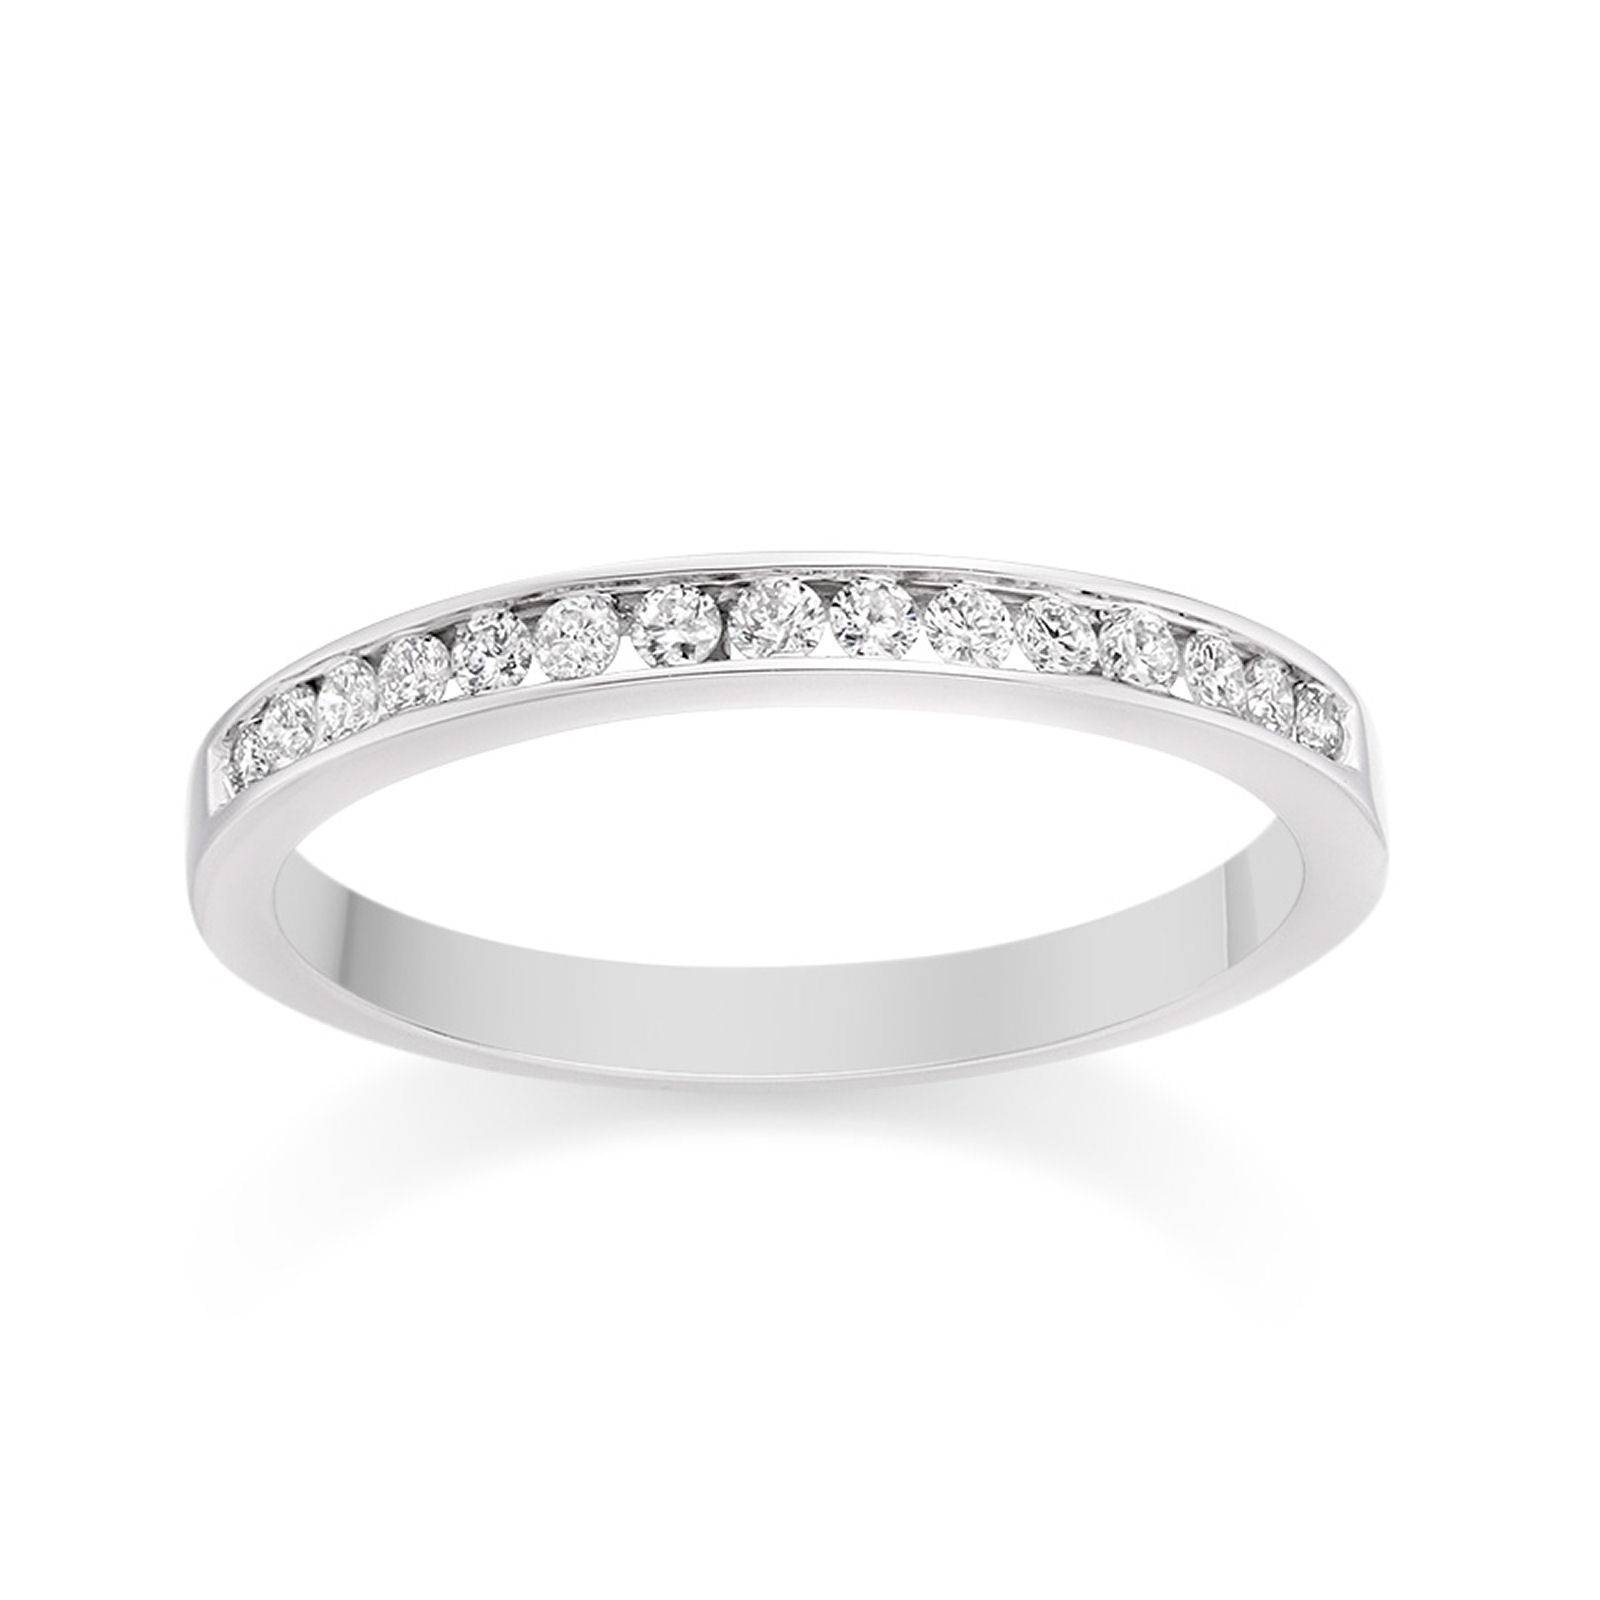 Channel Set Diamond Wedding Ring In Platinum Wedding Dress From Regarding Diamonds Wedding Rings (View 8 of 15)